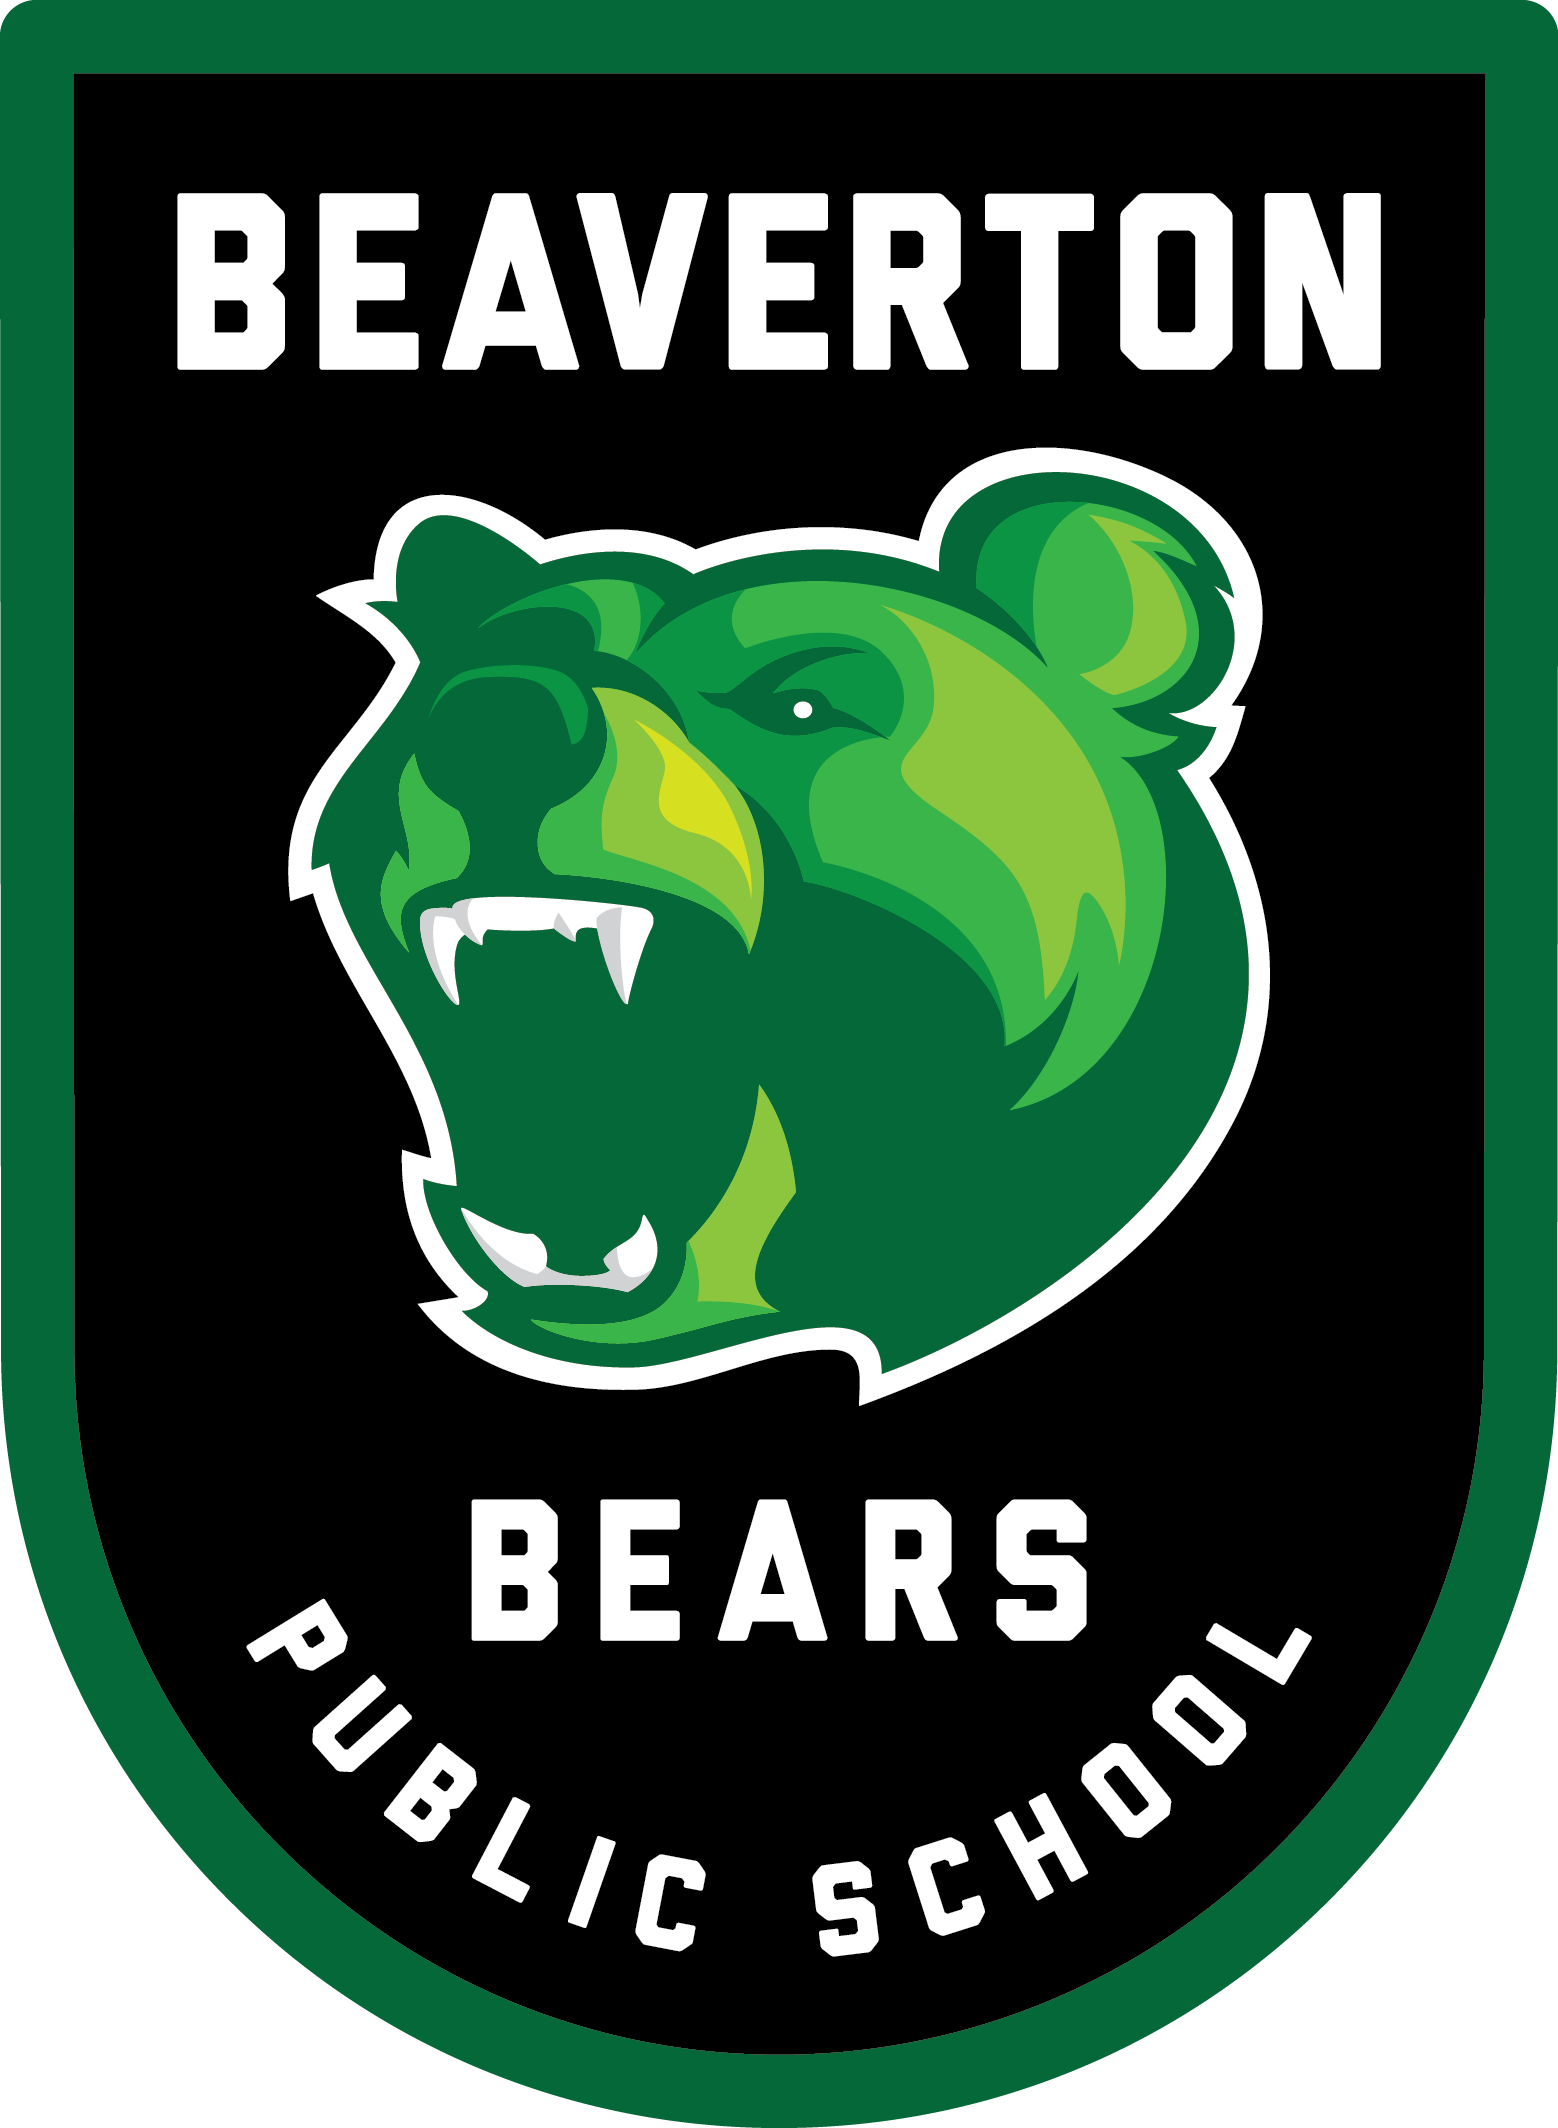 Beaverton Public School logo